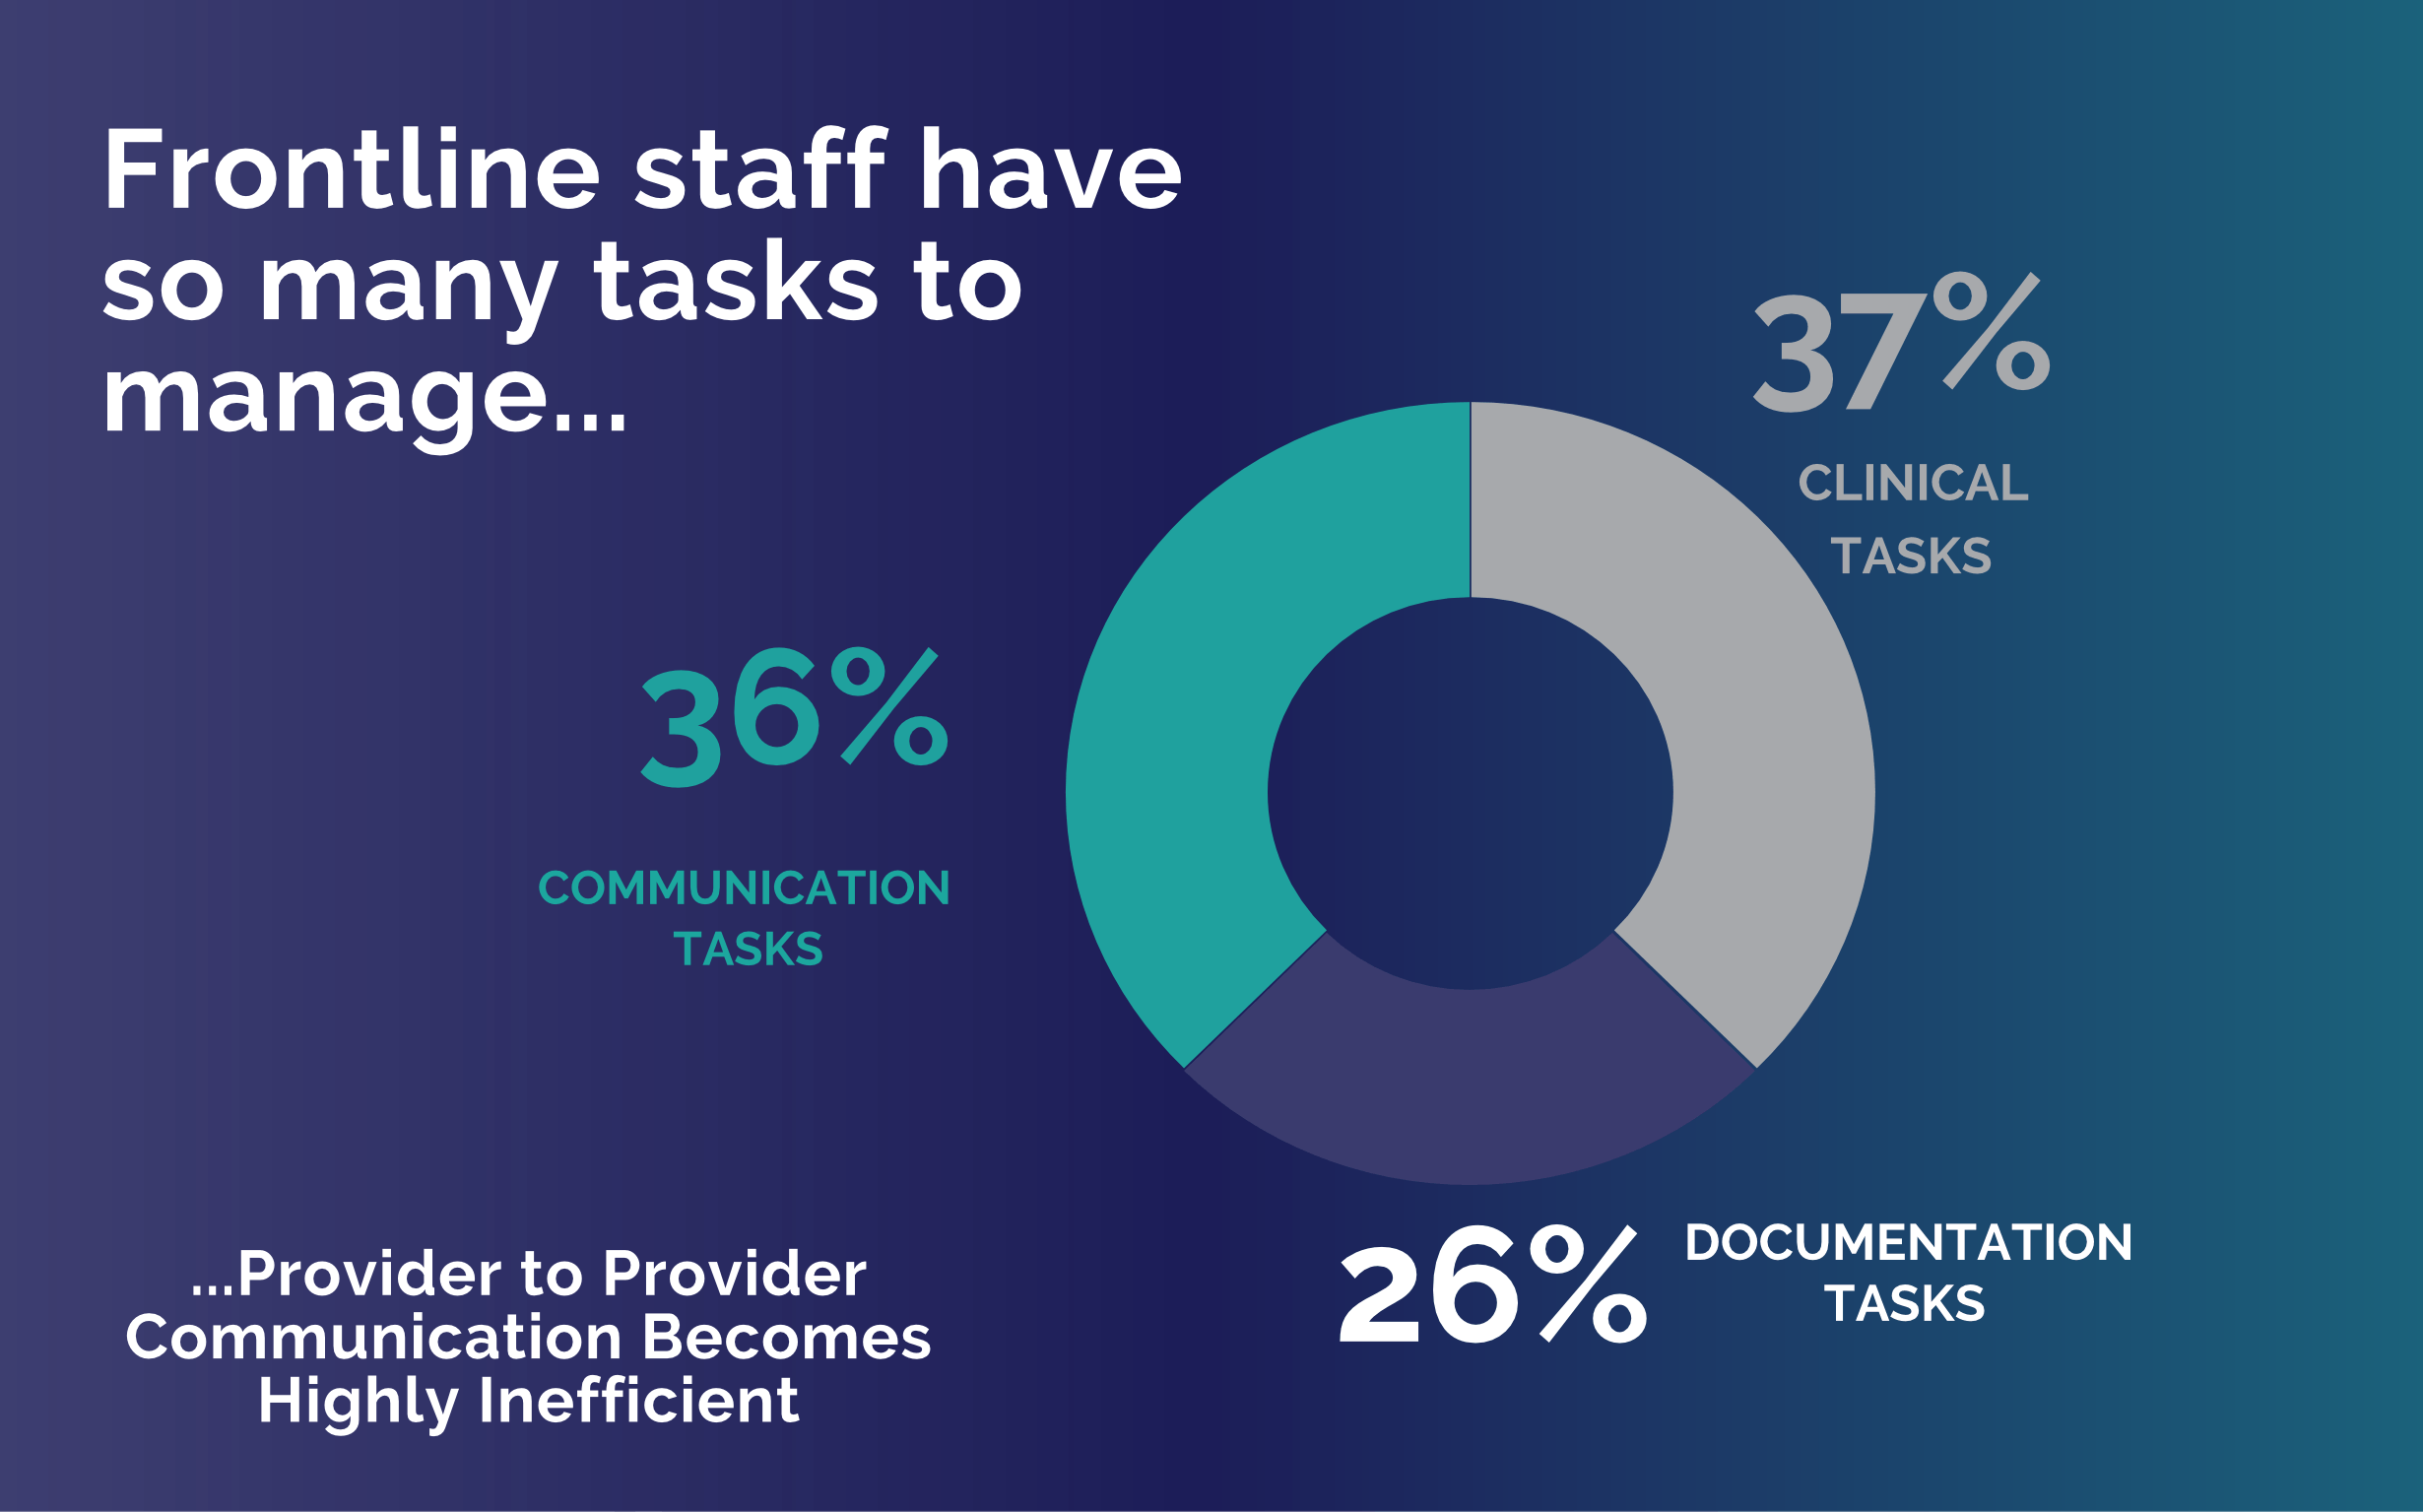 frontline staff have so many tasks to manage provider to provider communication becomes highly inefficient